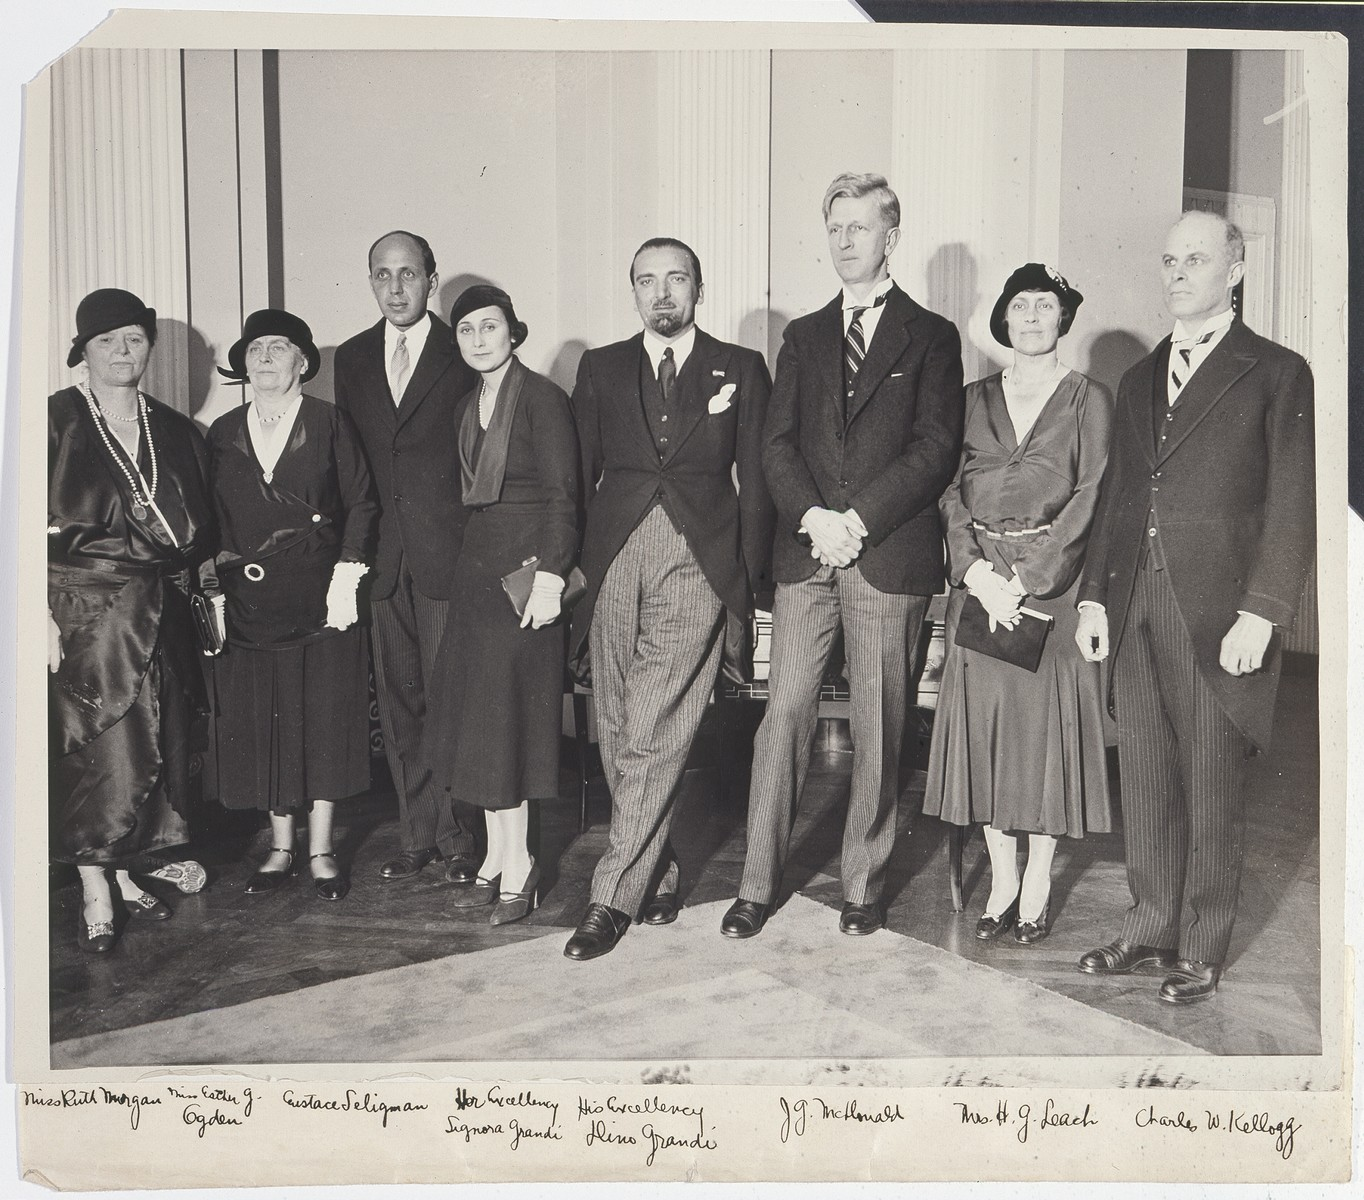 Group portrait of members of the board of the Foreign Policy Association of New York with Italian government official, Dino Grandi and his wife.  Pictured from left to right are: Ms. Ruth Morgan, Ms. Ester G. Ogden, Eustace Seligman, Signora Grandi, Dino Grandi, James G. McDonald, Ms. H.G. Leach and Charles Kellogg.